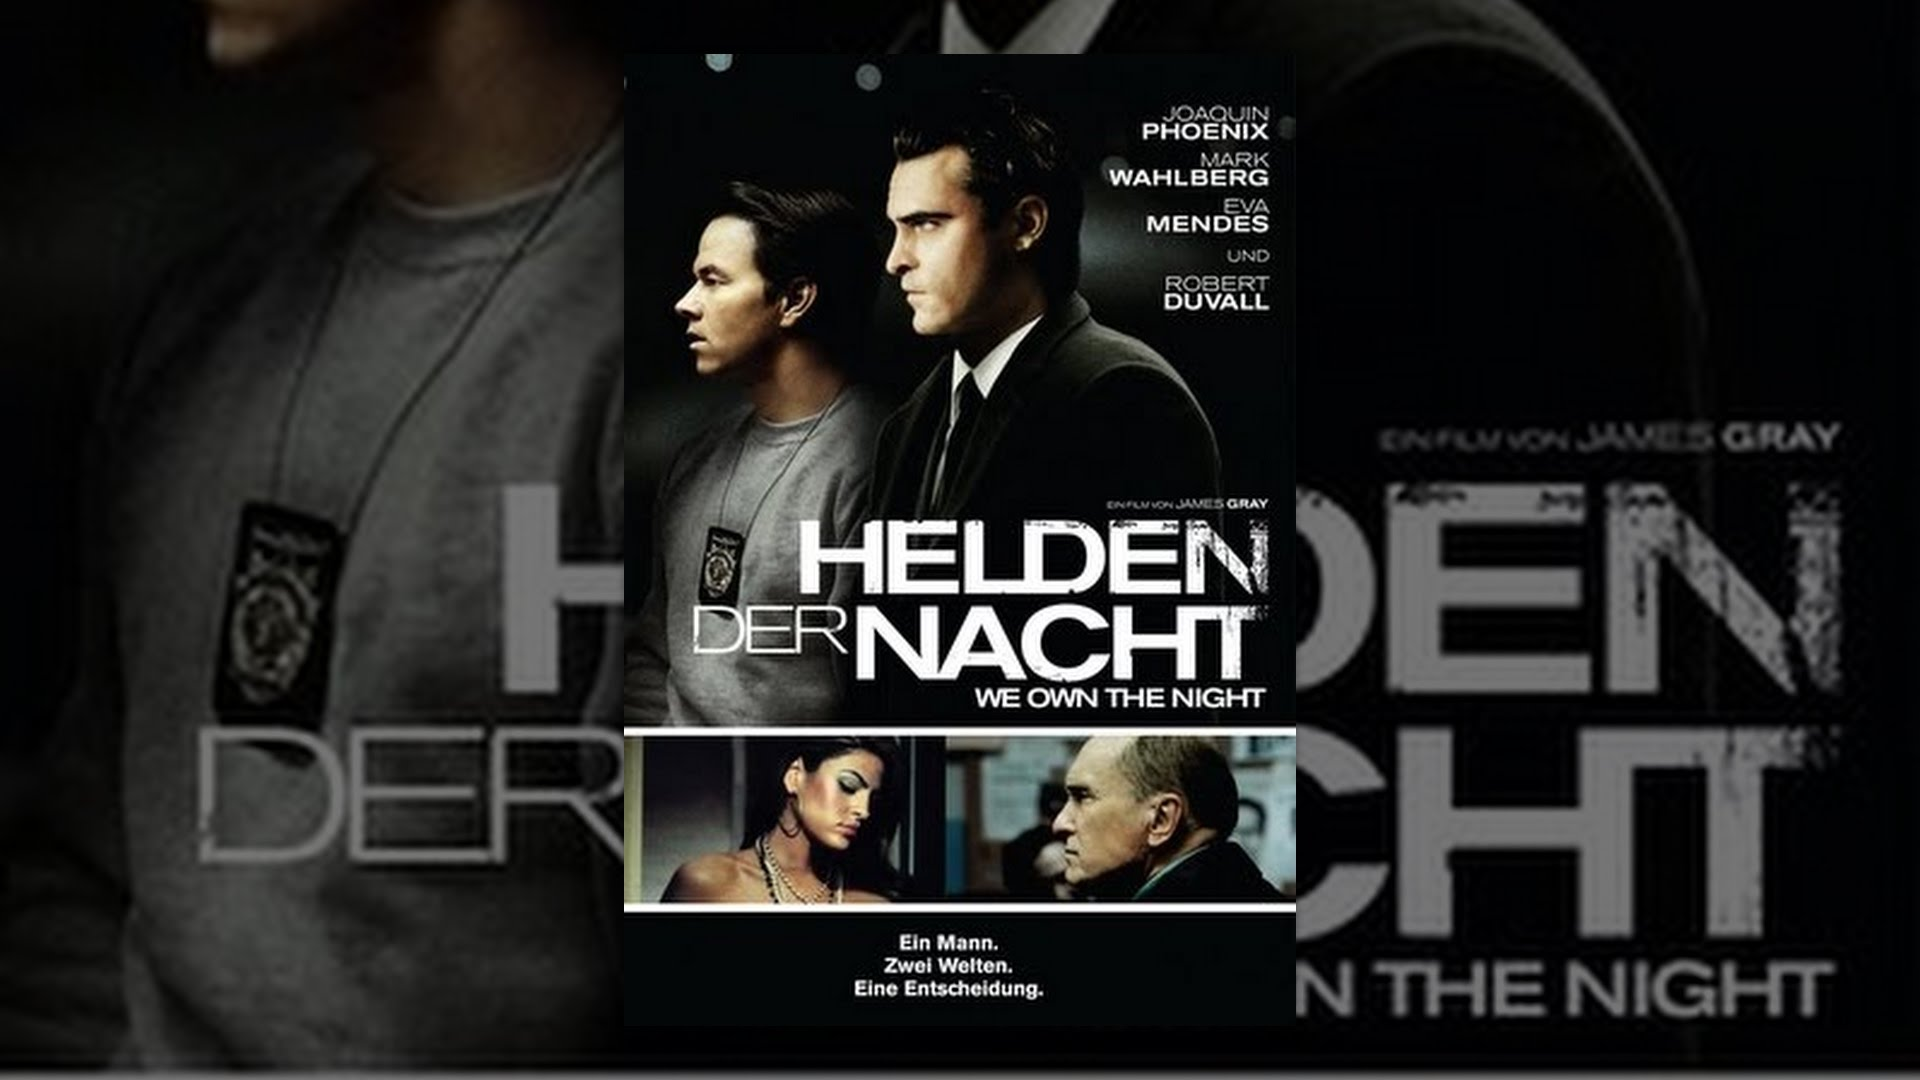 Helden Der Nacht – We Own The Night